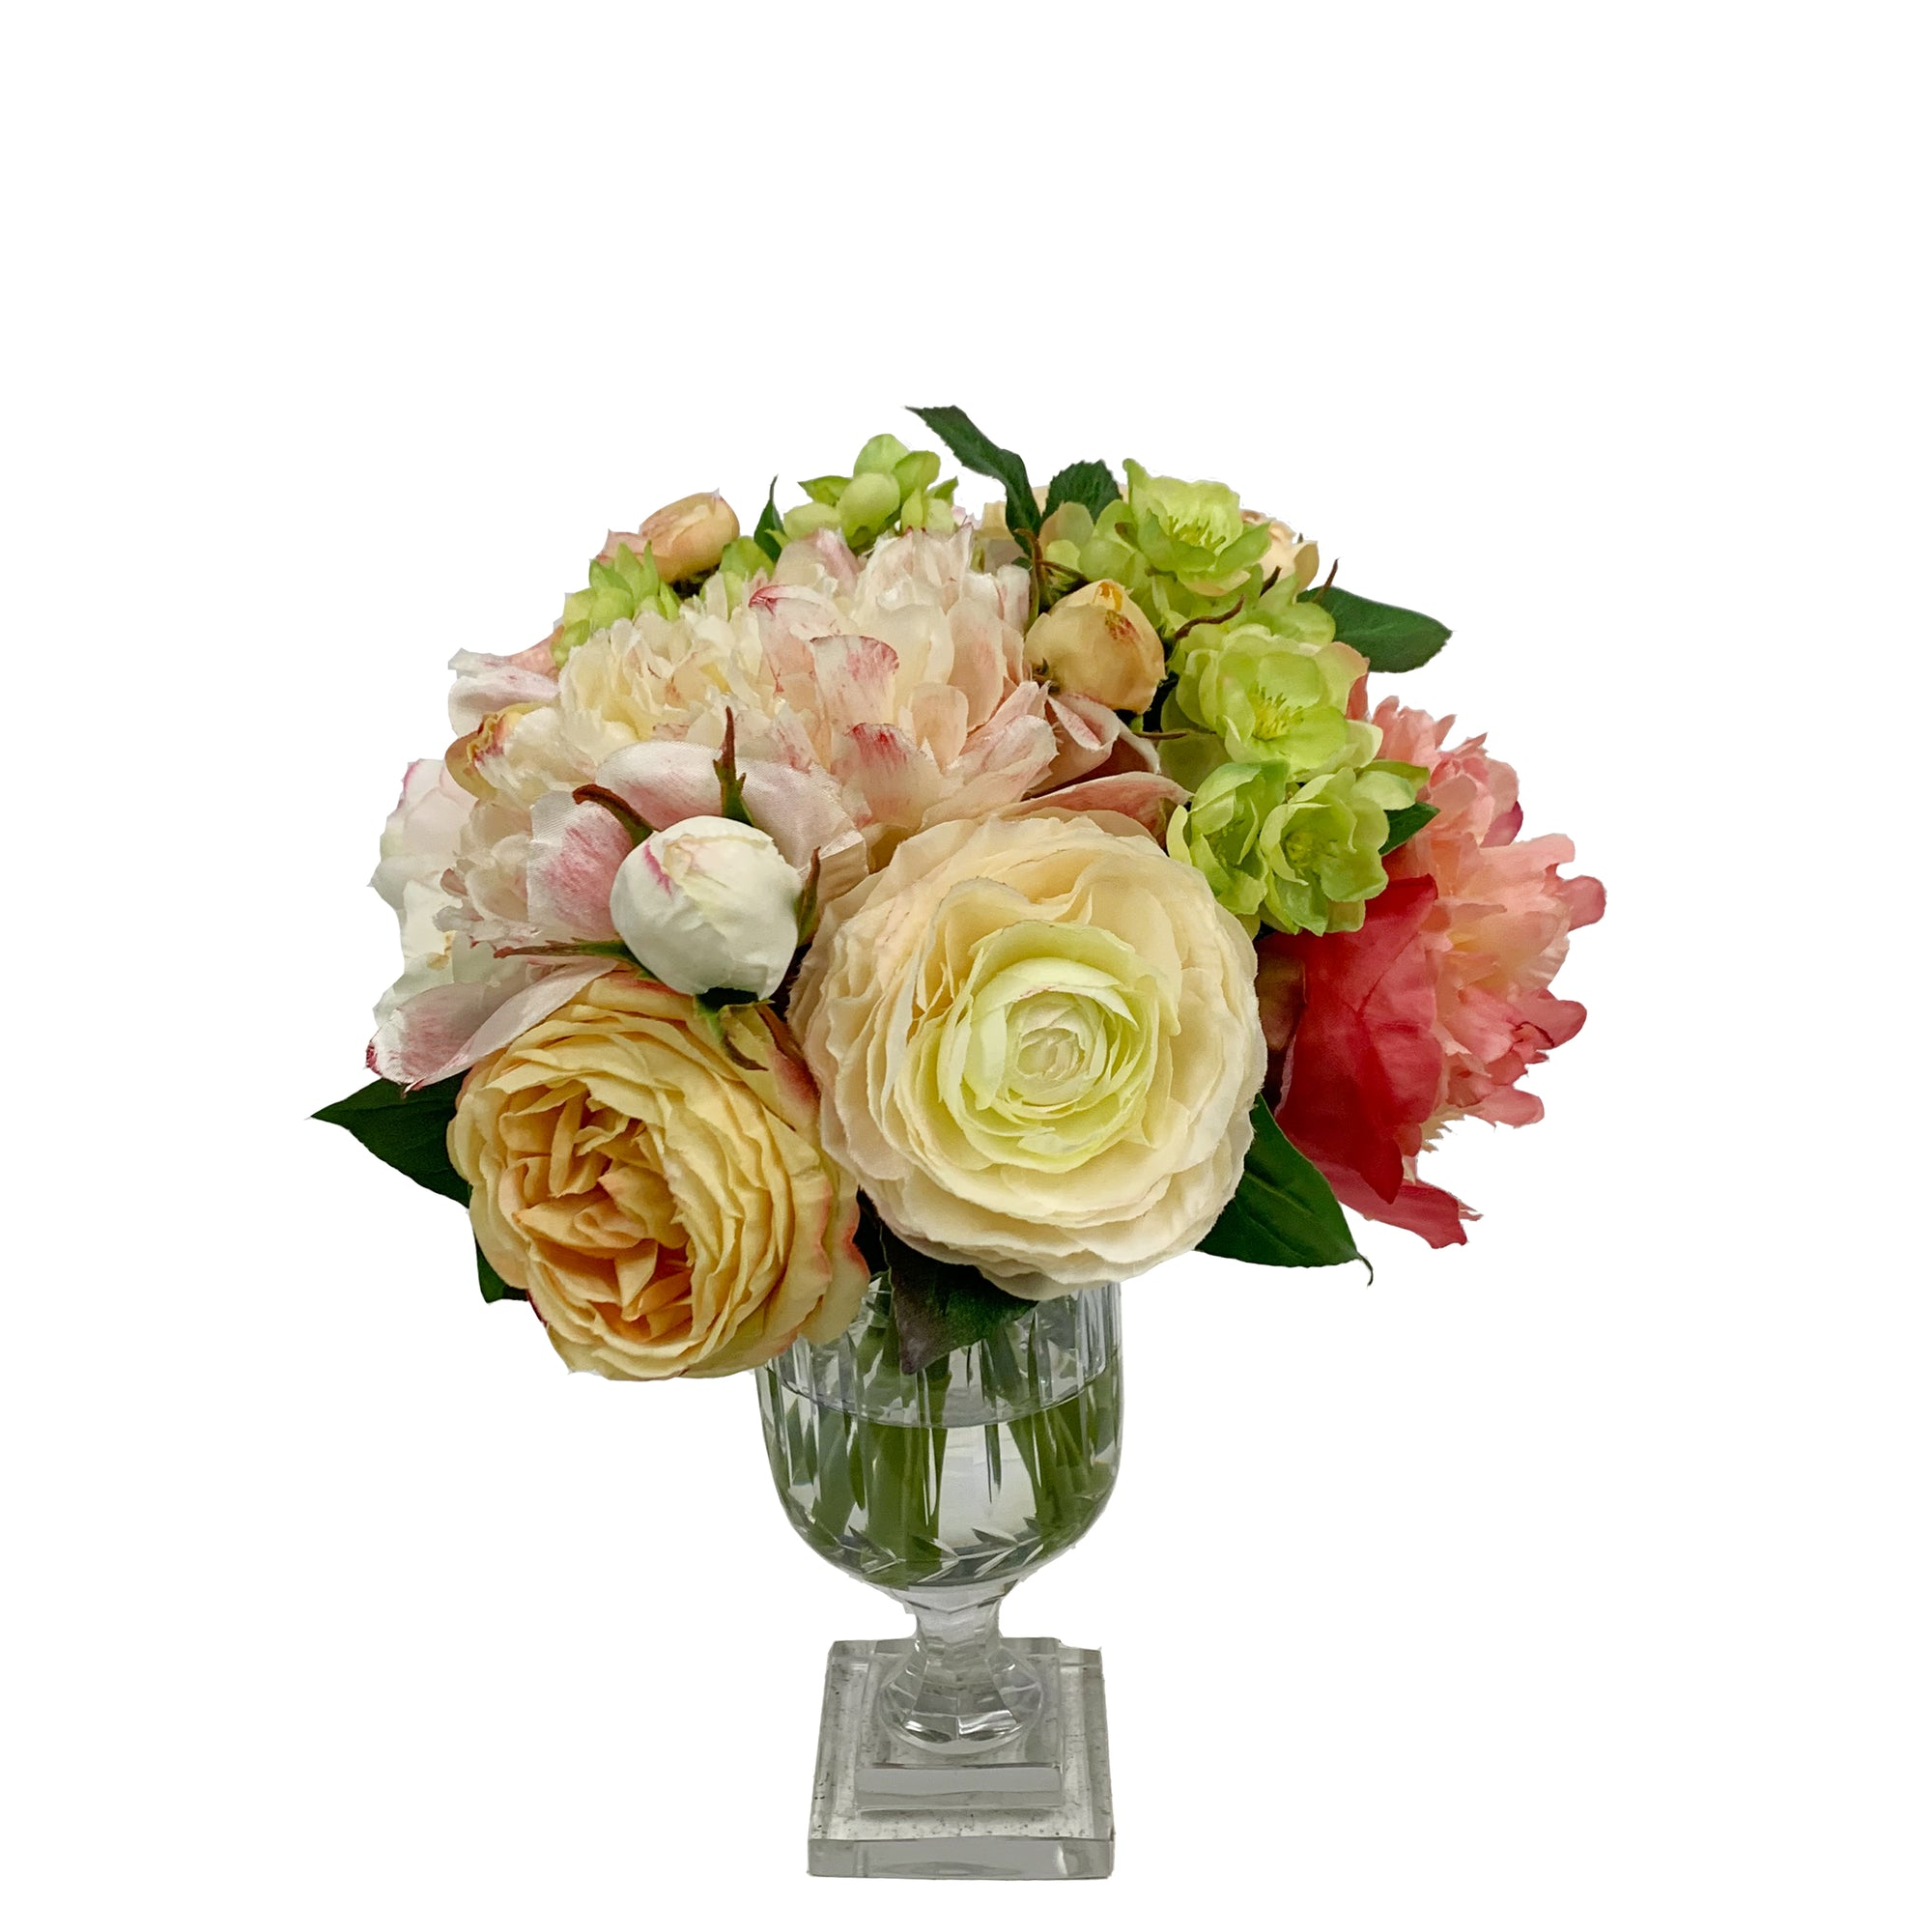 Mixed roses and peonies in clear glass urn